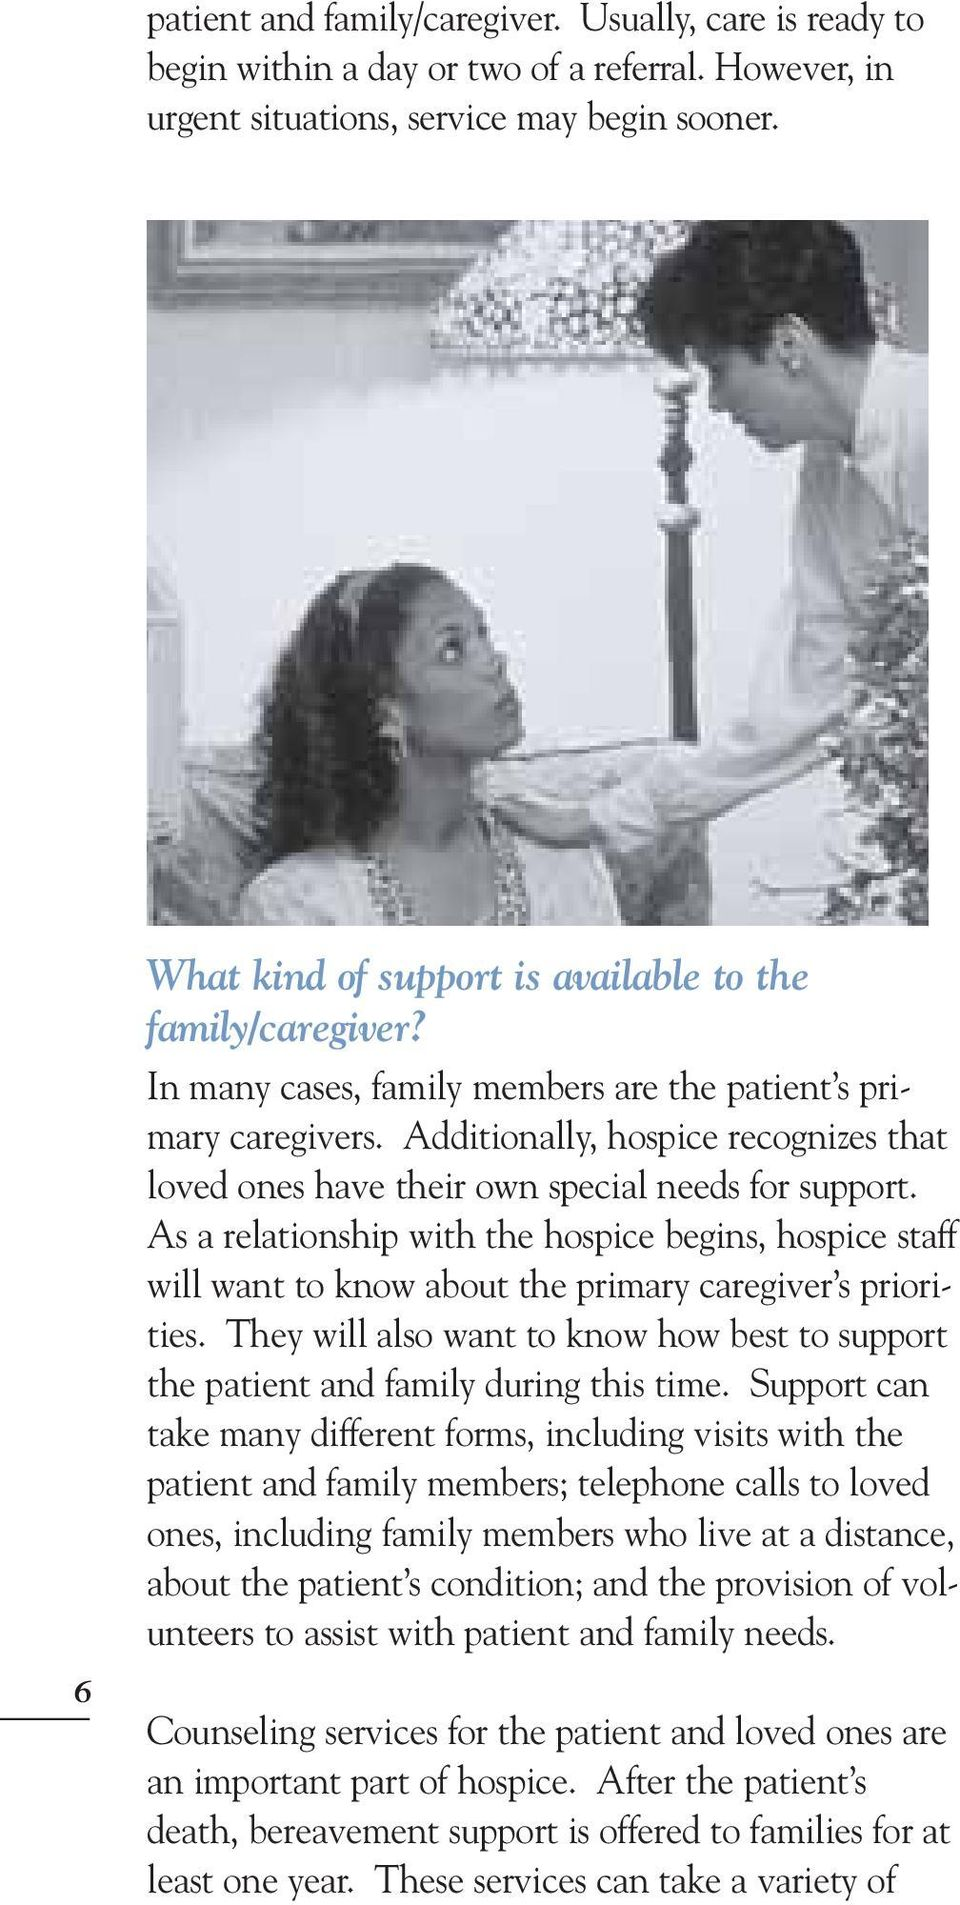 Additionally, hospice recognizes that loved ones have their own special needs for support.